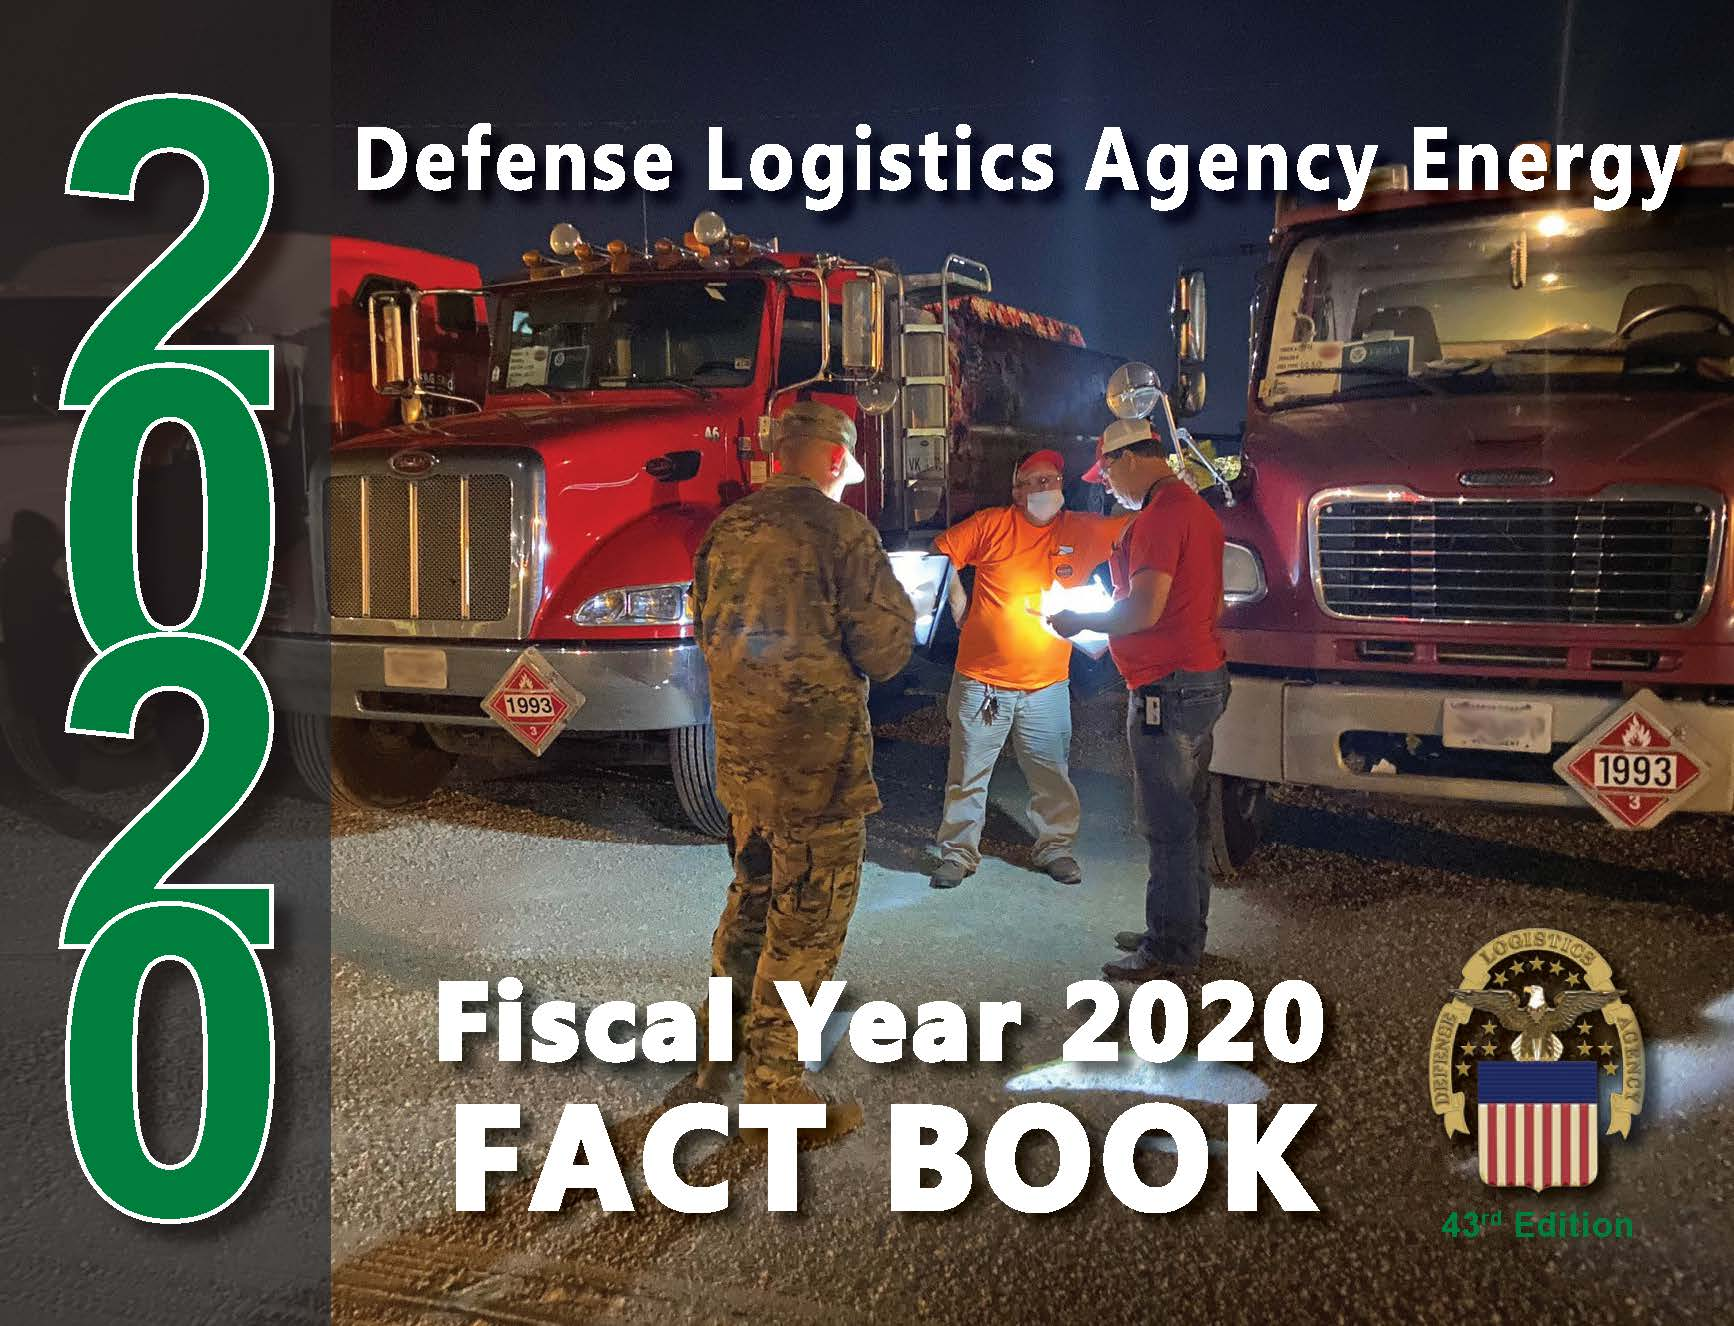 DLA Energy FY20 Fact Book cover